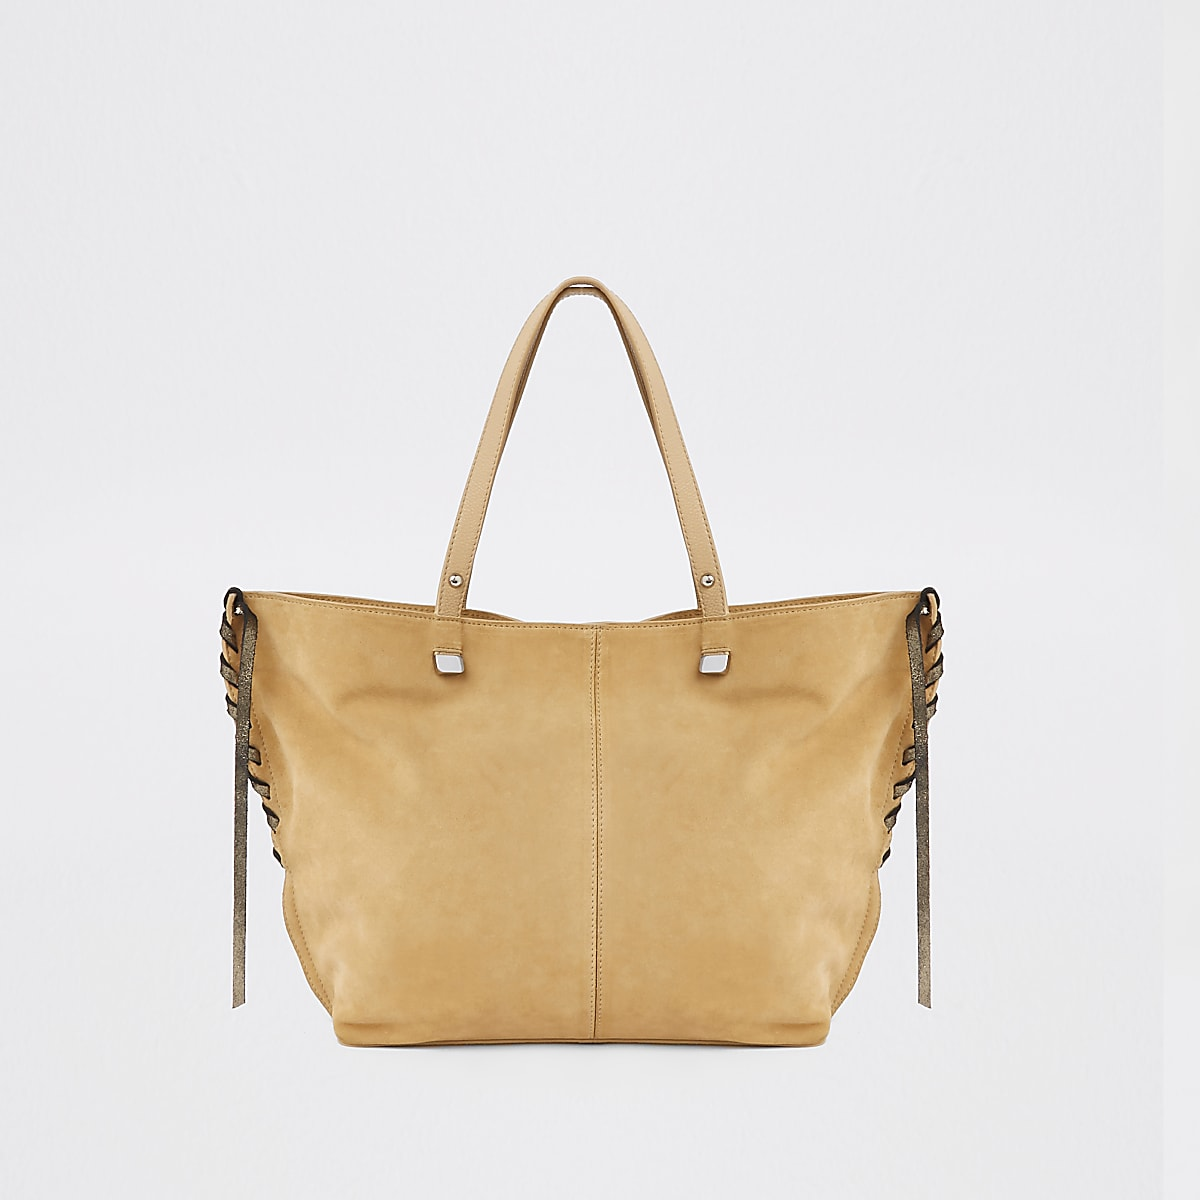 Light brown leather tote bag